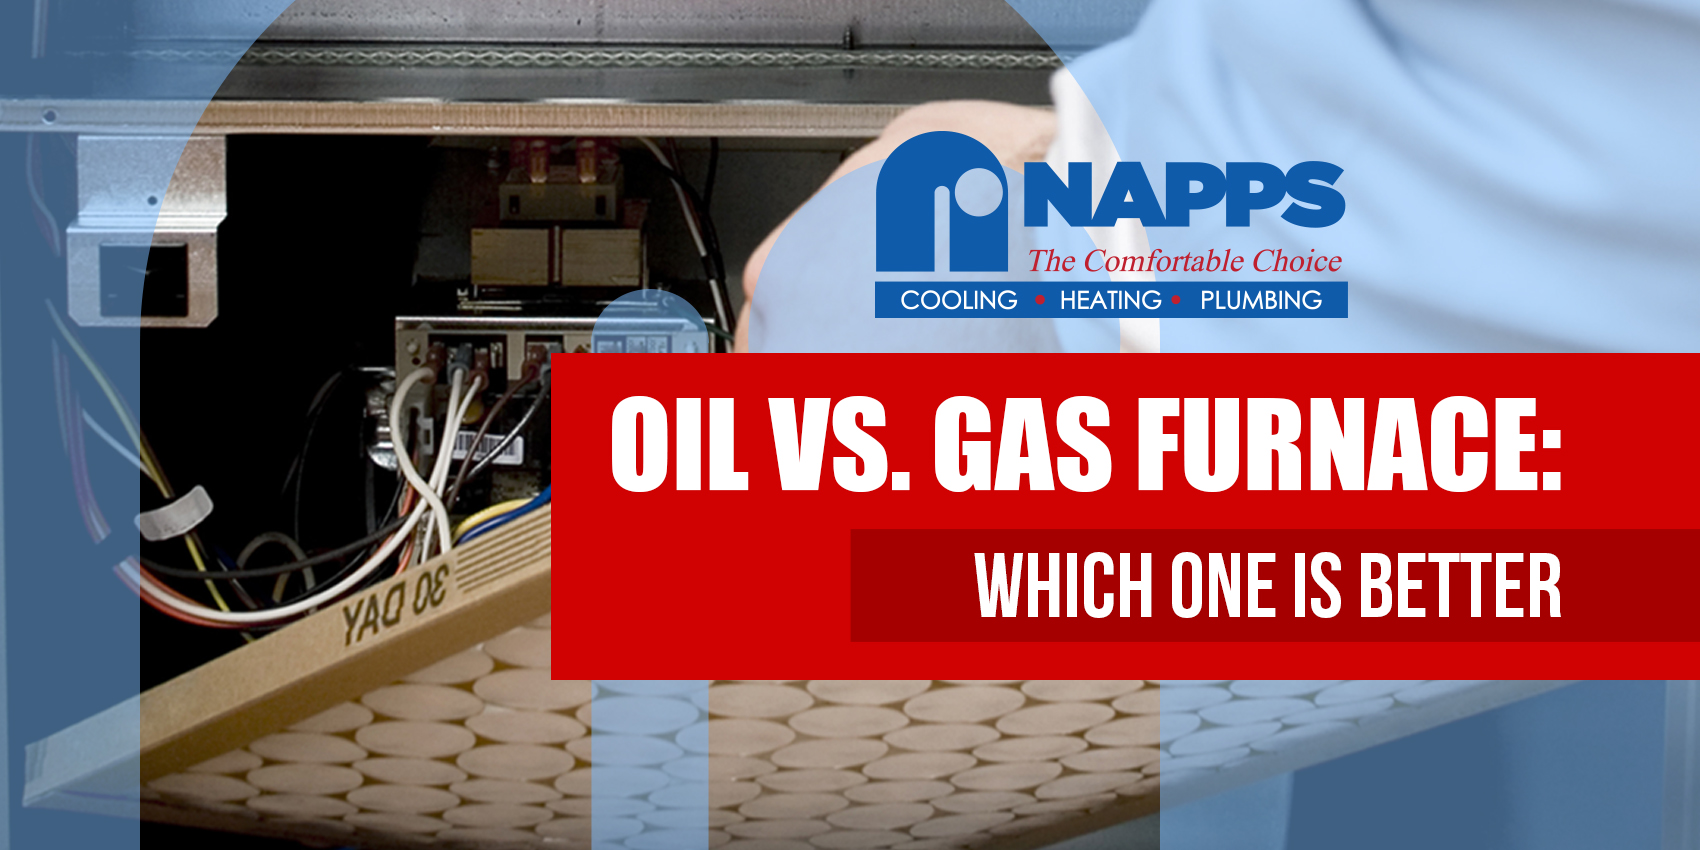 Oil Vs. Gas Furnace: Which One Is Better